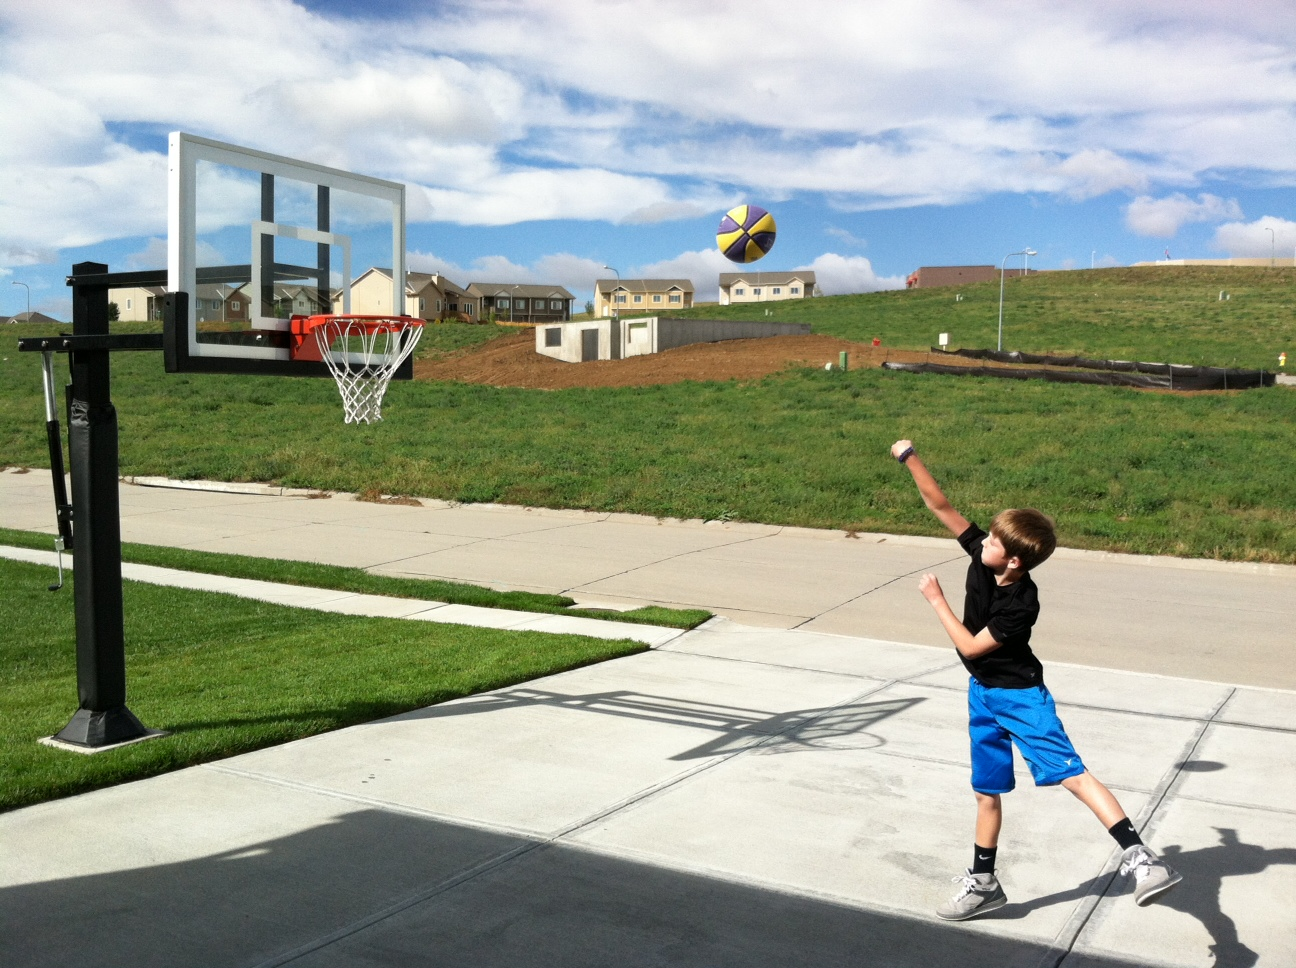 a-young-boy-shooting-a-basket-at-pro-dunk-silver-basketball-1598-source.jpg